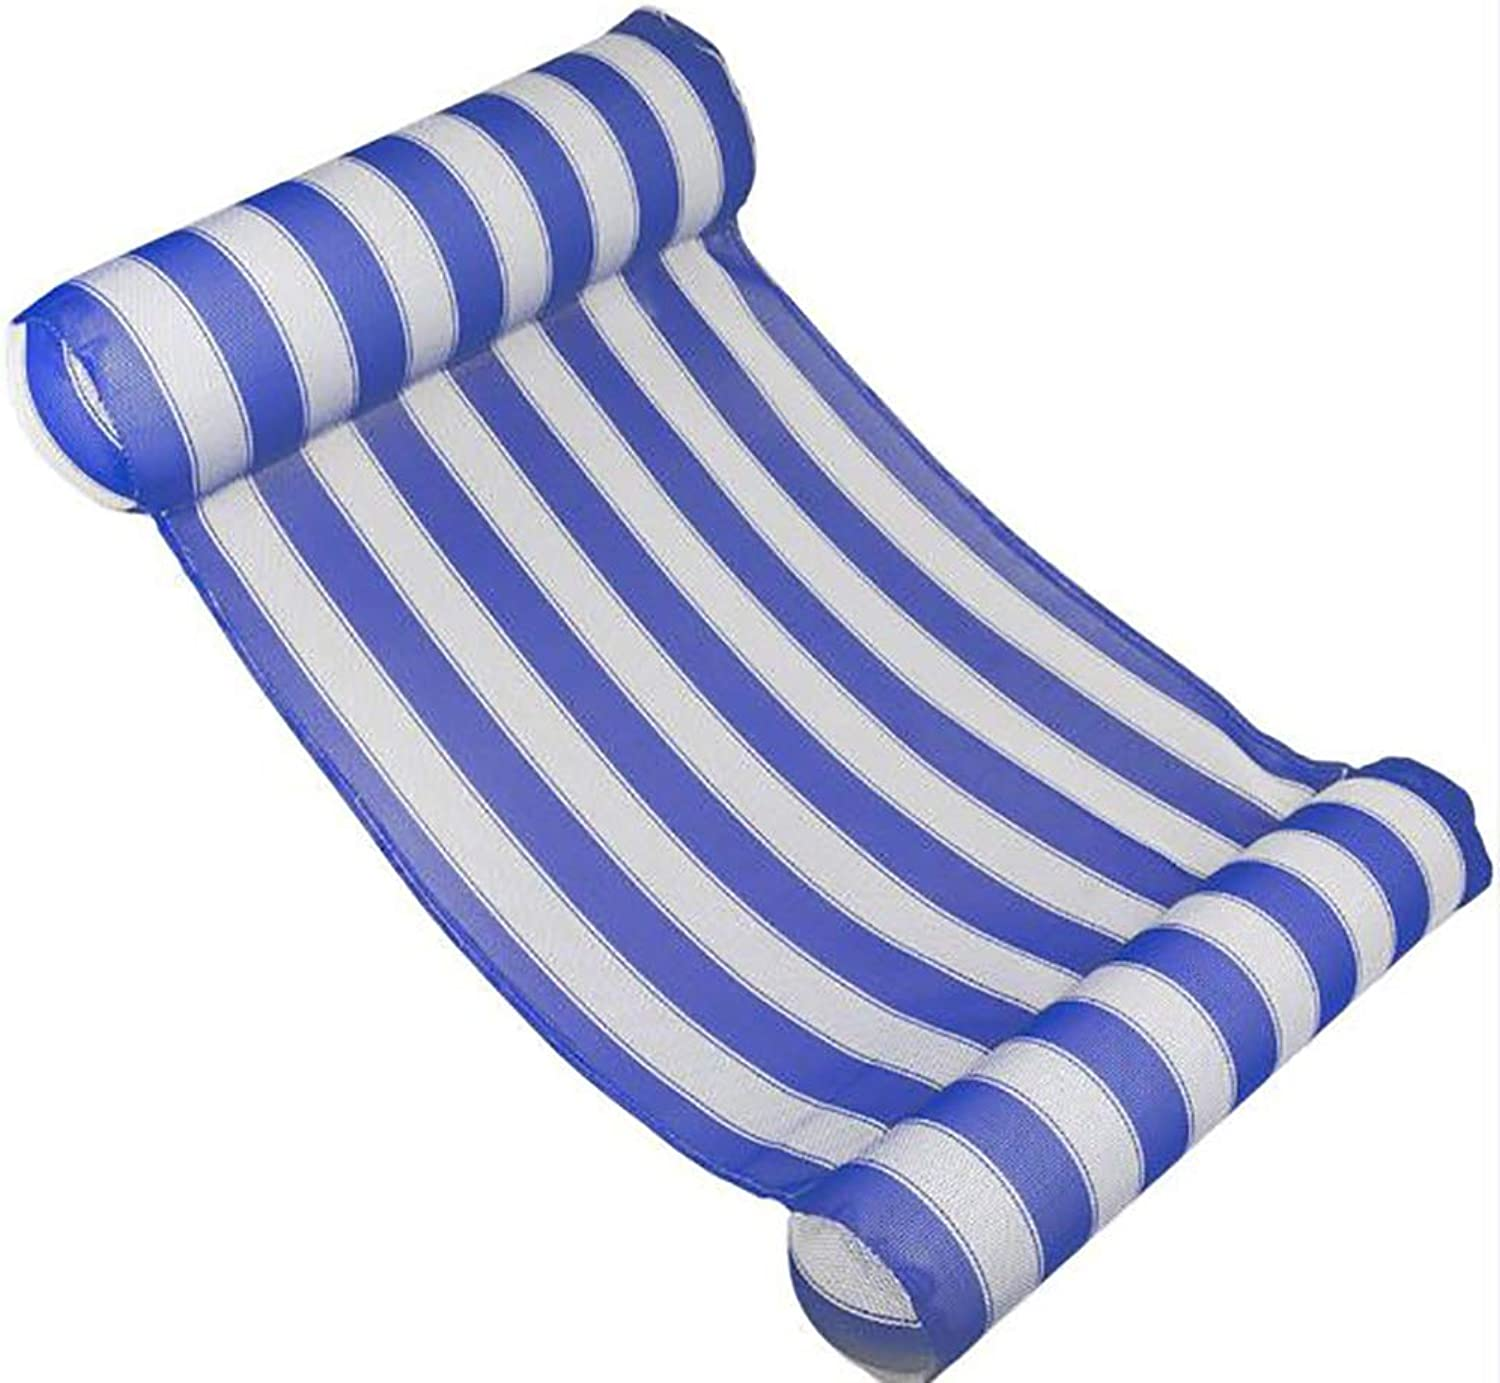 Swimming Pool Water Hammock, Lounge Float Hammock, Inflatable Raft Swimming Pool Lounger, with Headrest & Footrest,blueee